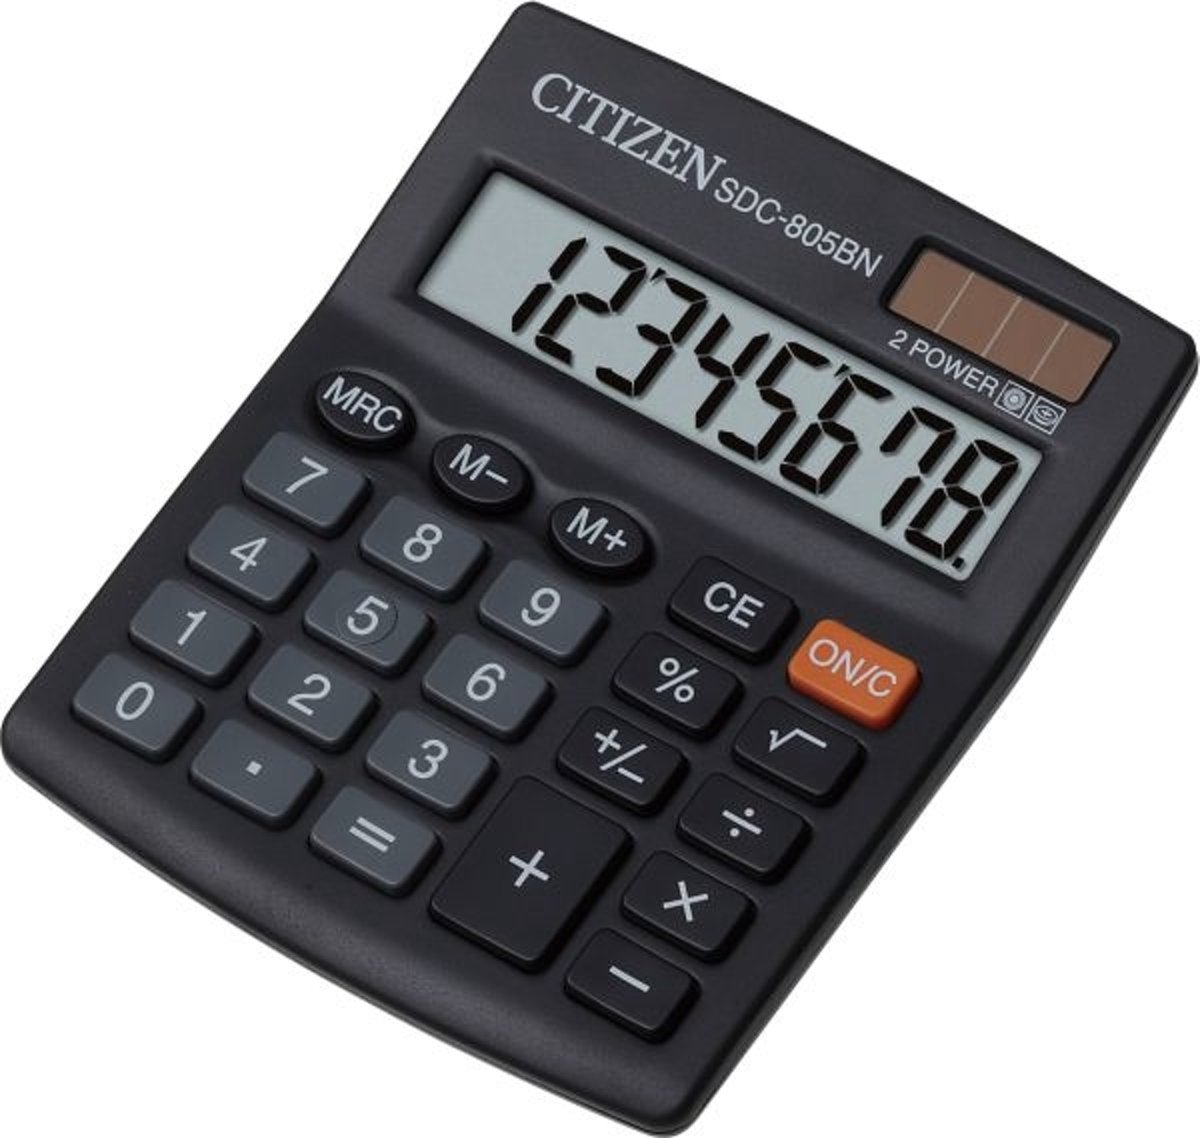 Citizen SDC-805BN Desktop Basisrekenmachine Zwart calculator